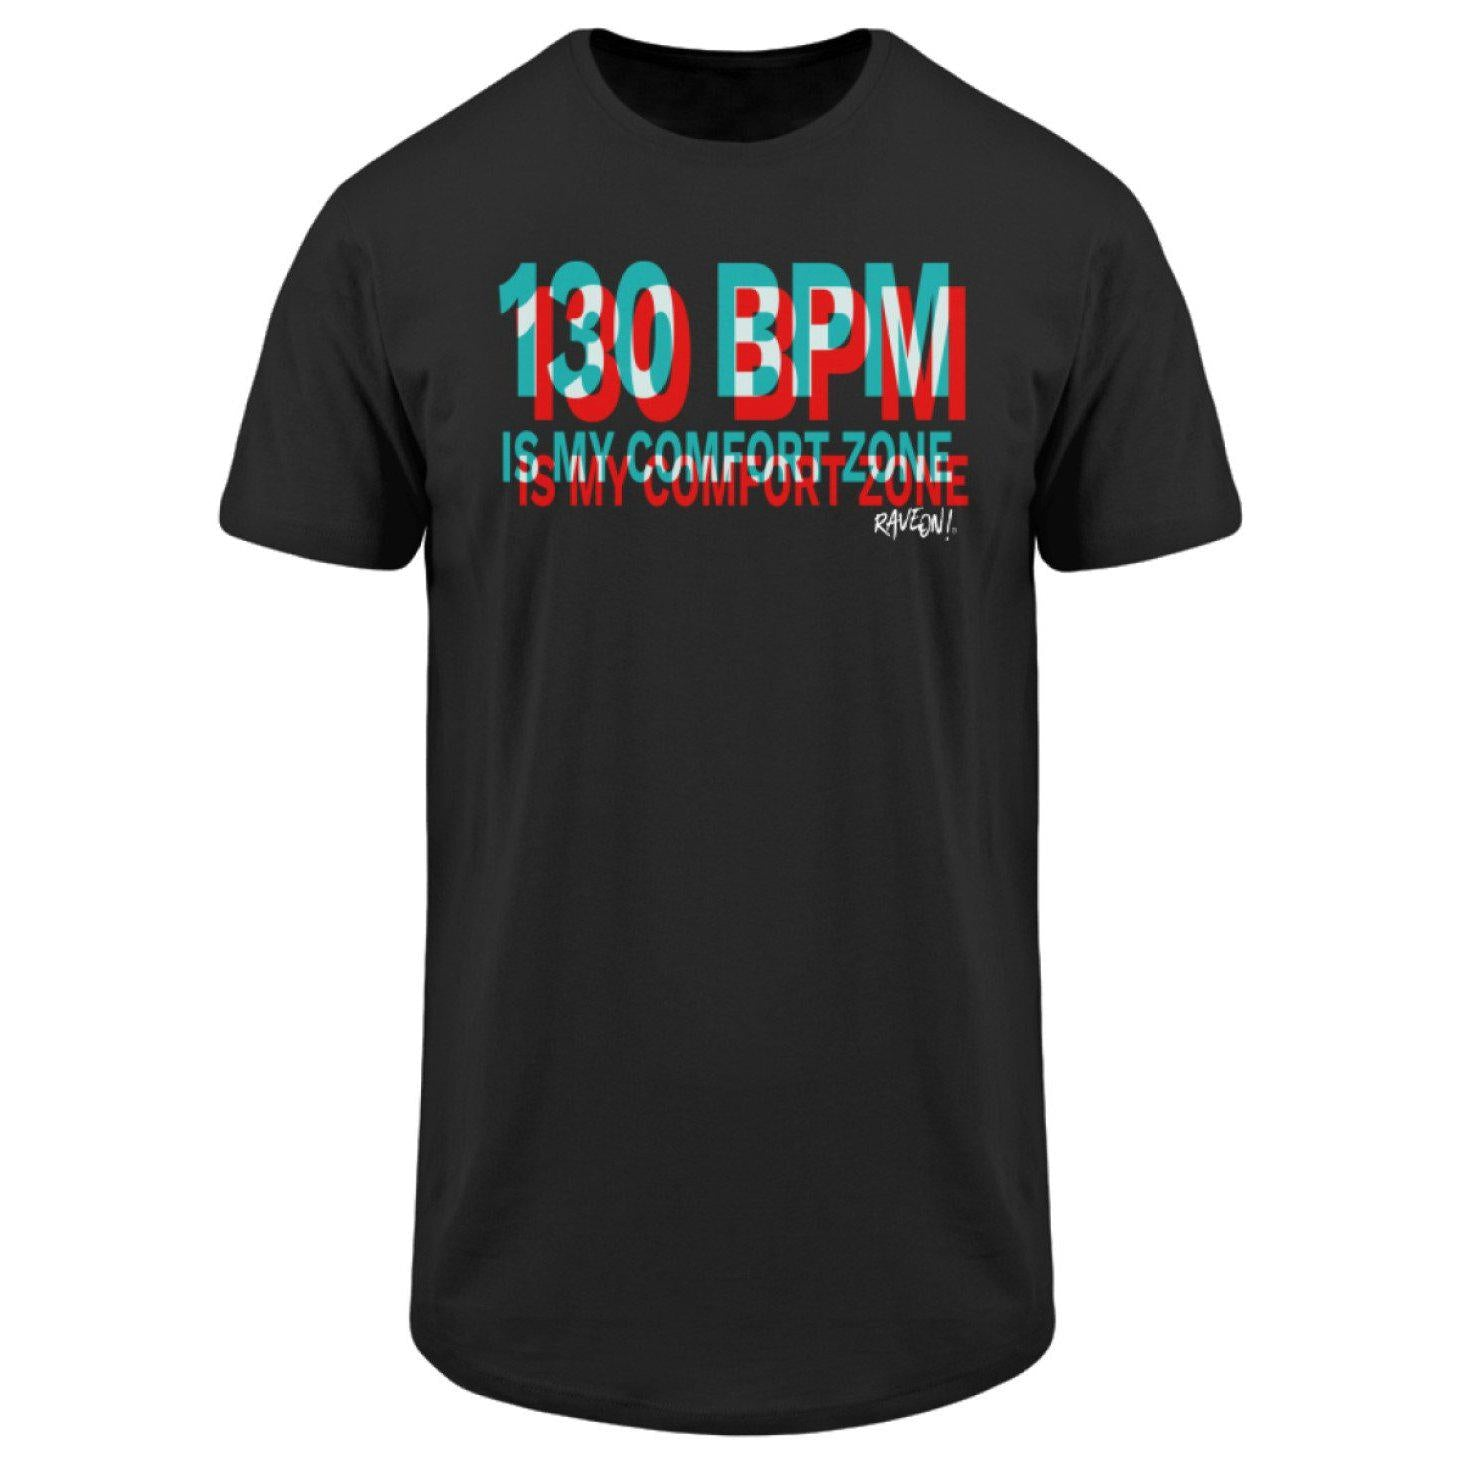 130 BPM - Rave On!® - Herren Long Tee Men Long Tee Black / S - Rave On!® der Club & Techno Szene Shop für Coole Junge Mode Streetwear Style & Fashion Outfits + Sexy Festival 420 Stuff